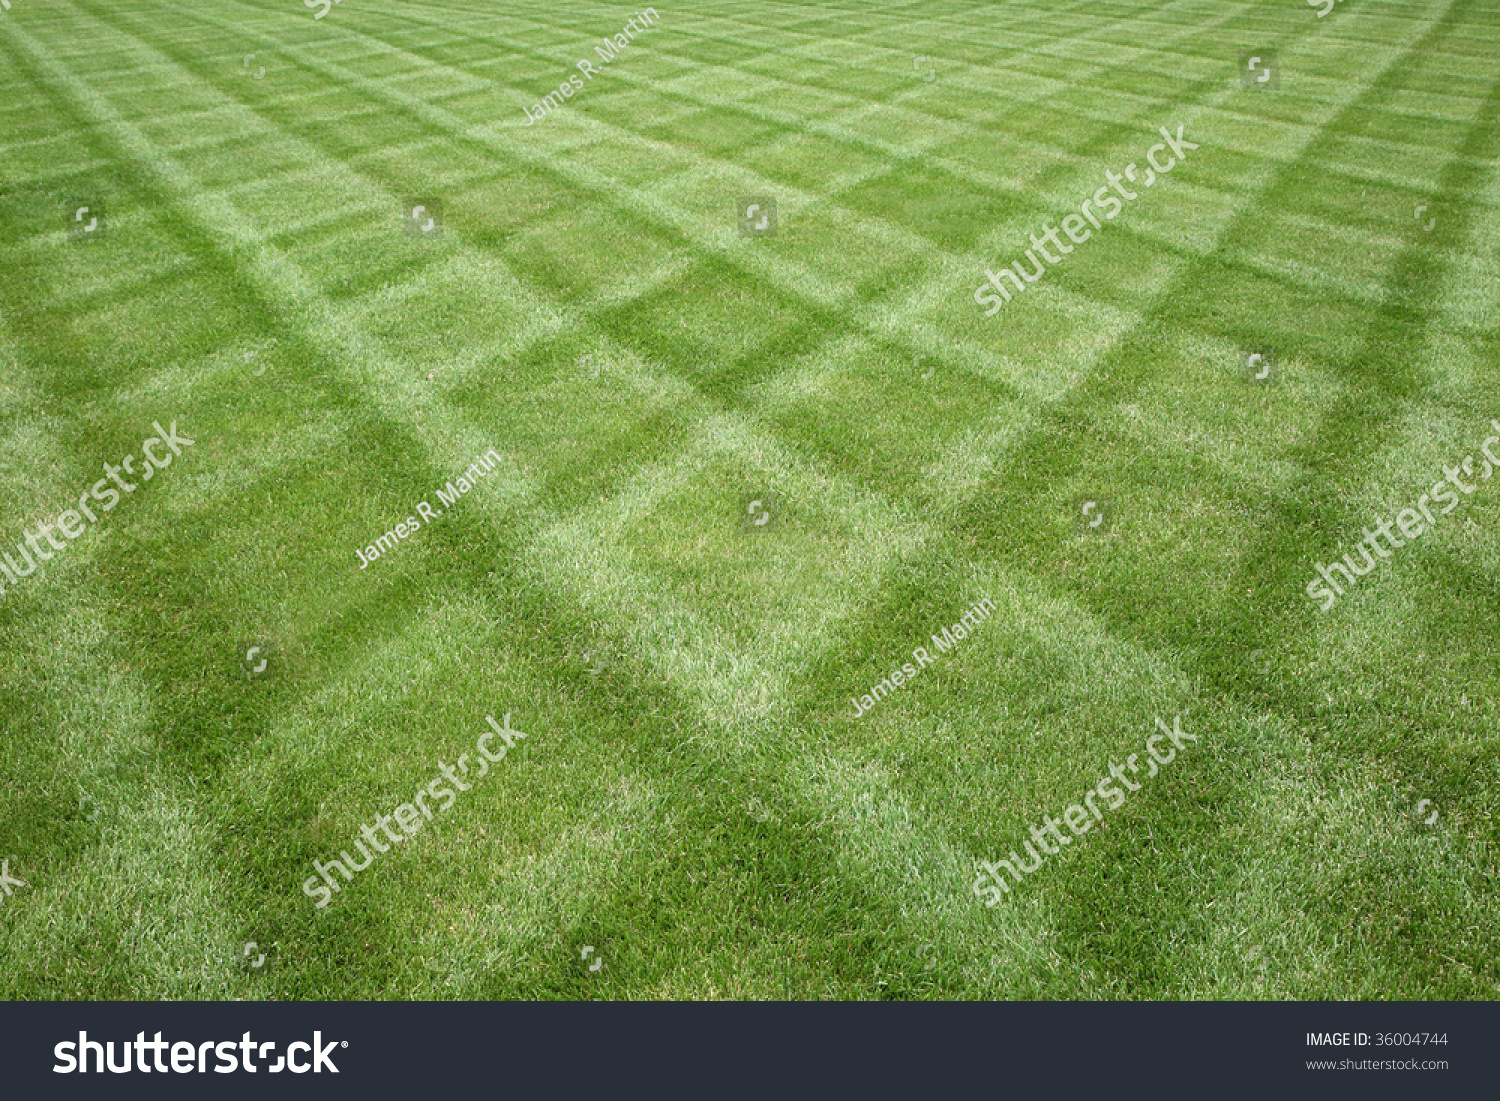 Manicured Lawn Professionally Cut In A Diamond Pattern